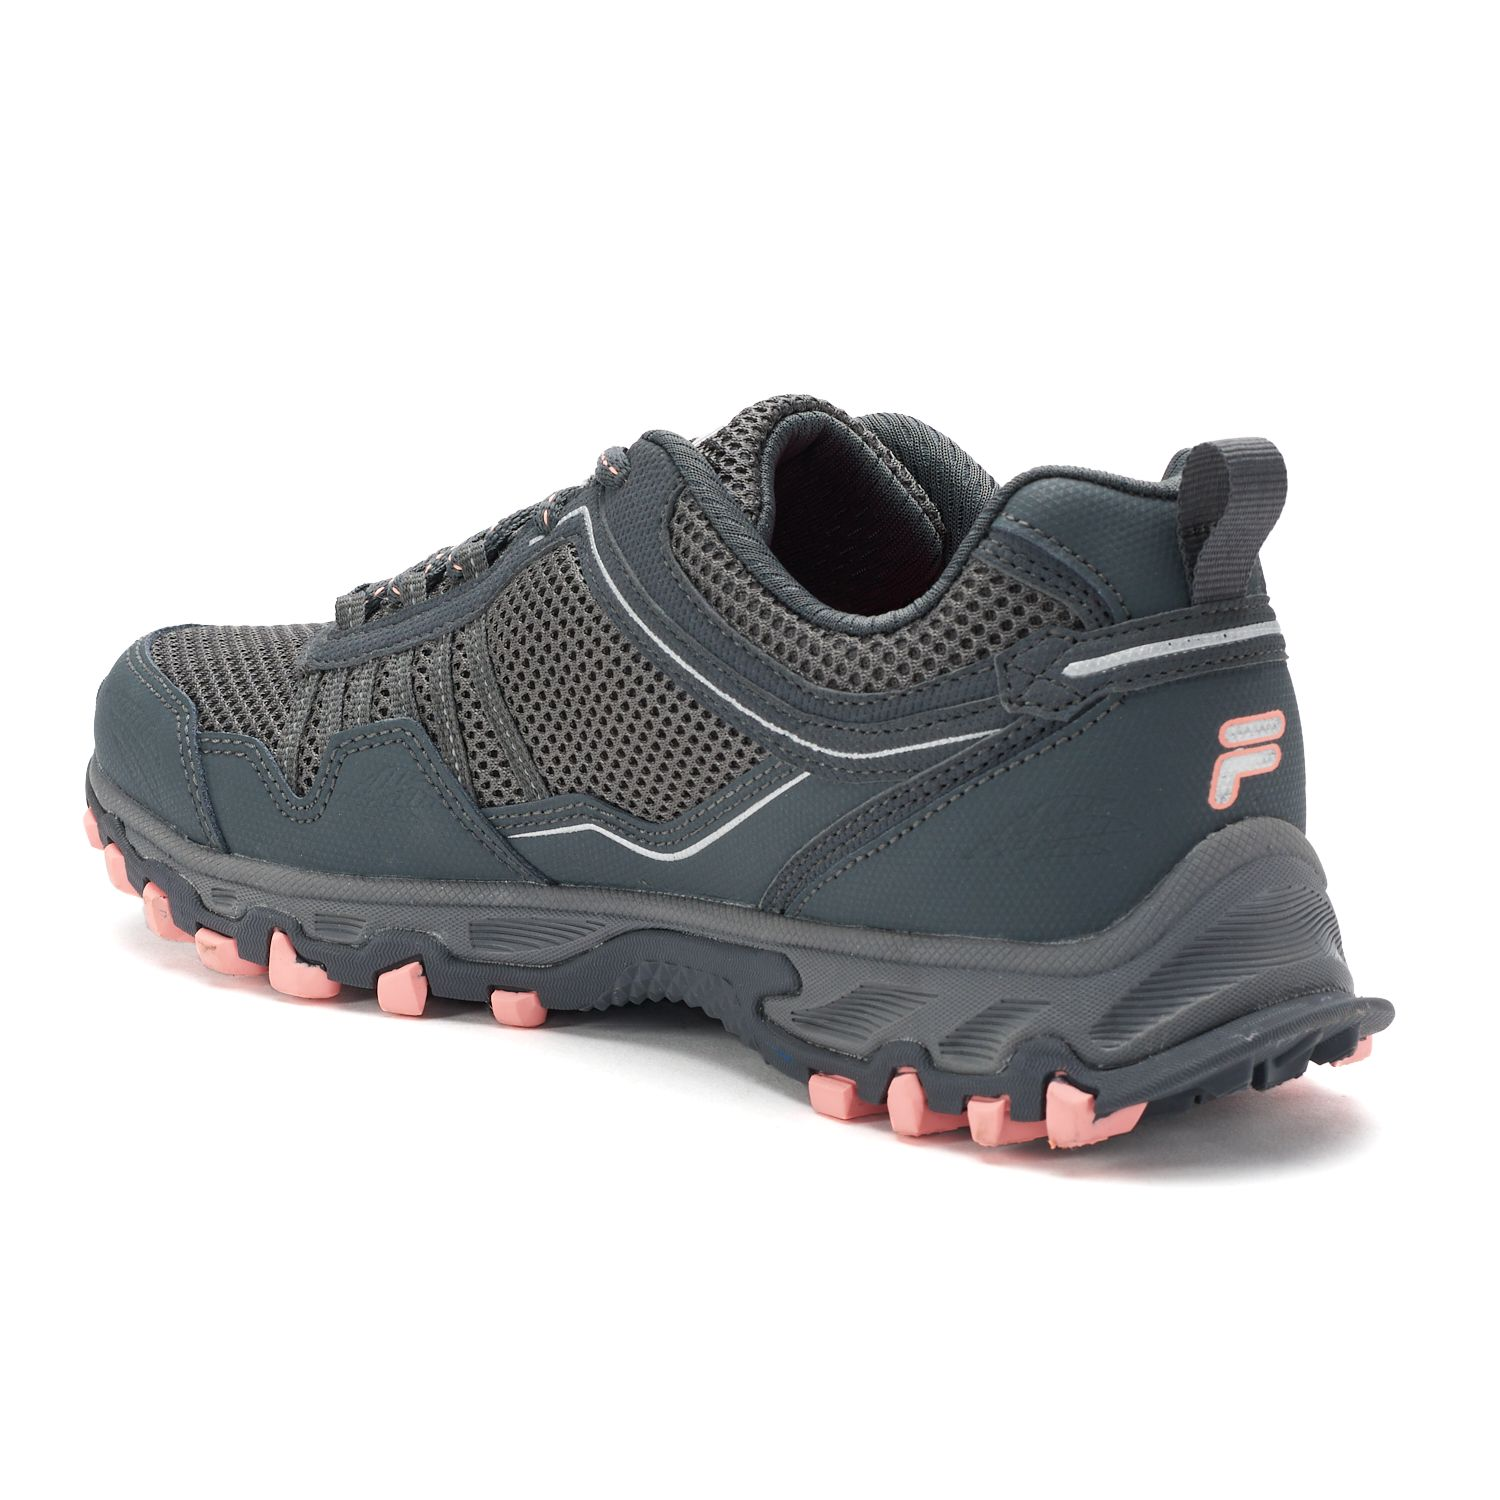 976c00a91bc9 FILA Memory Foam Athletic Shoes   Sneakers - Shoes